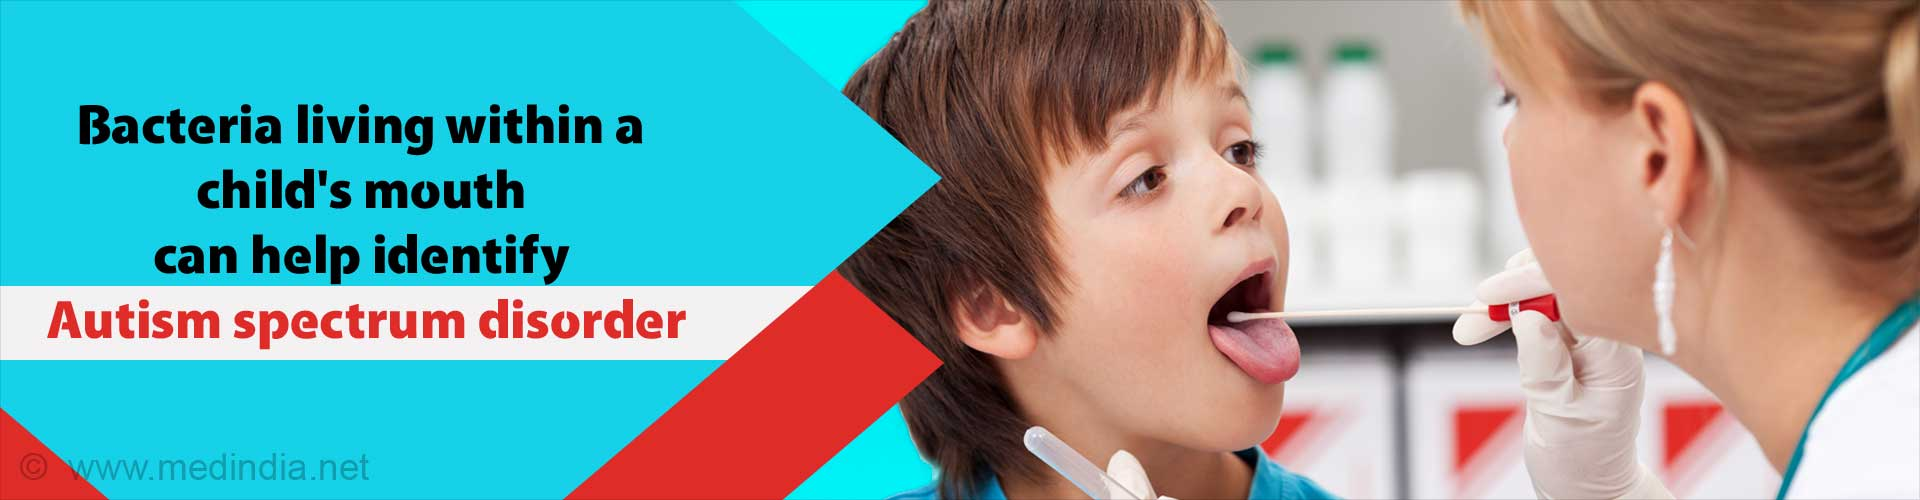 Bacteria living within a child's mouth can help identify autism spectrum disorder.